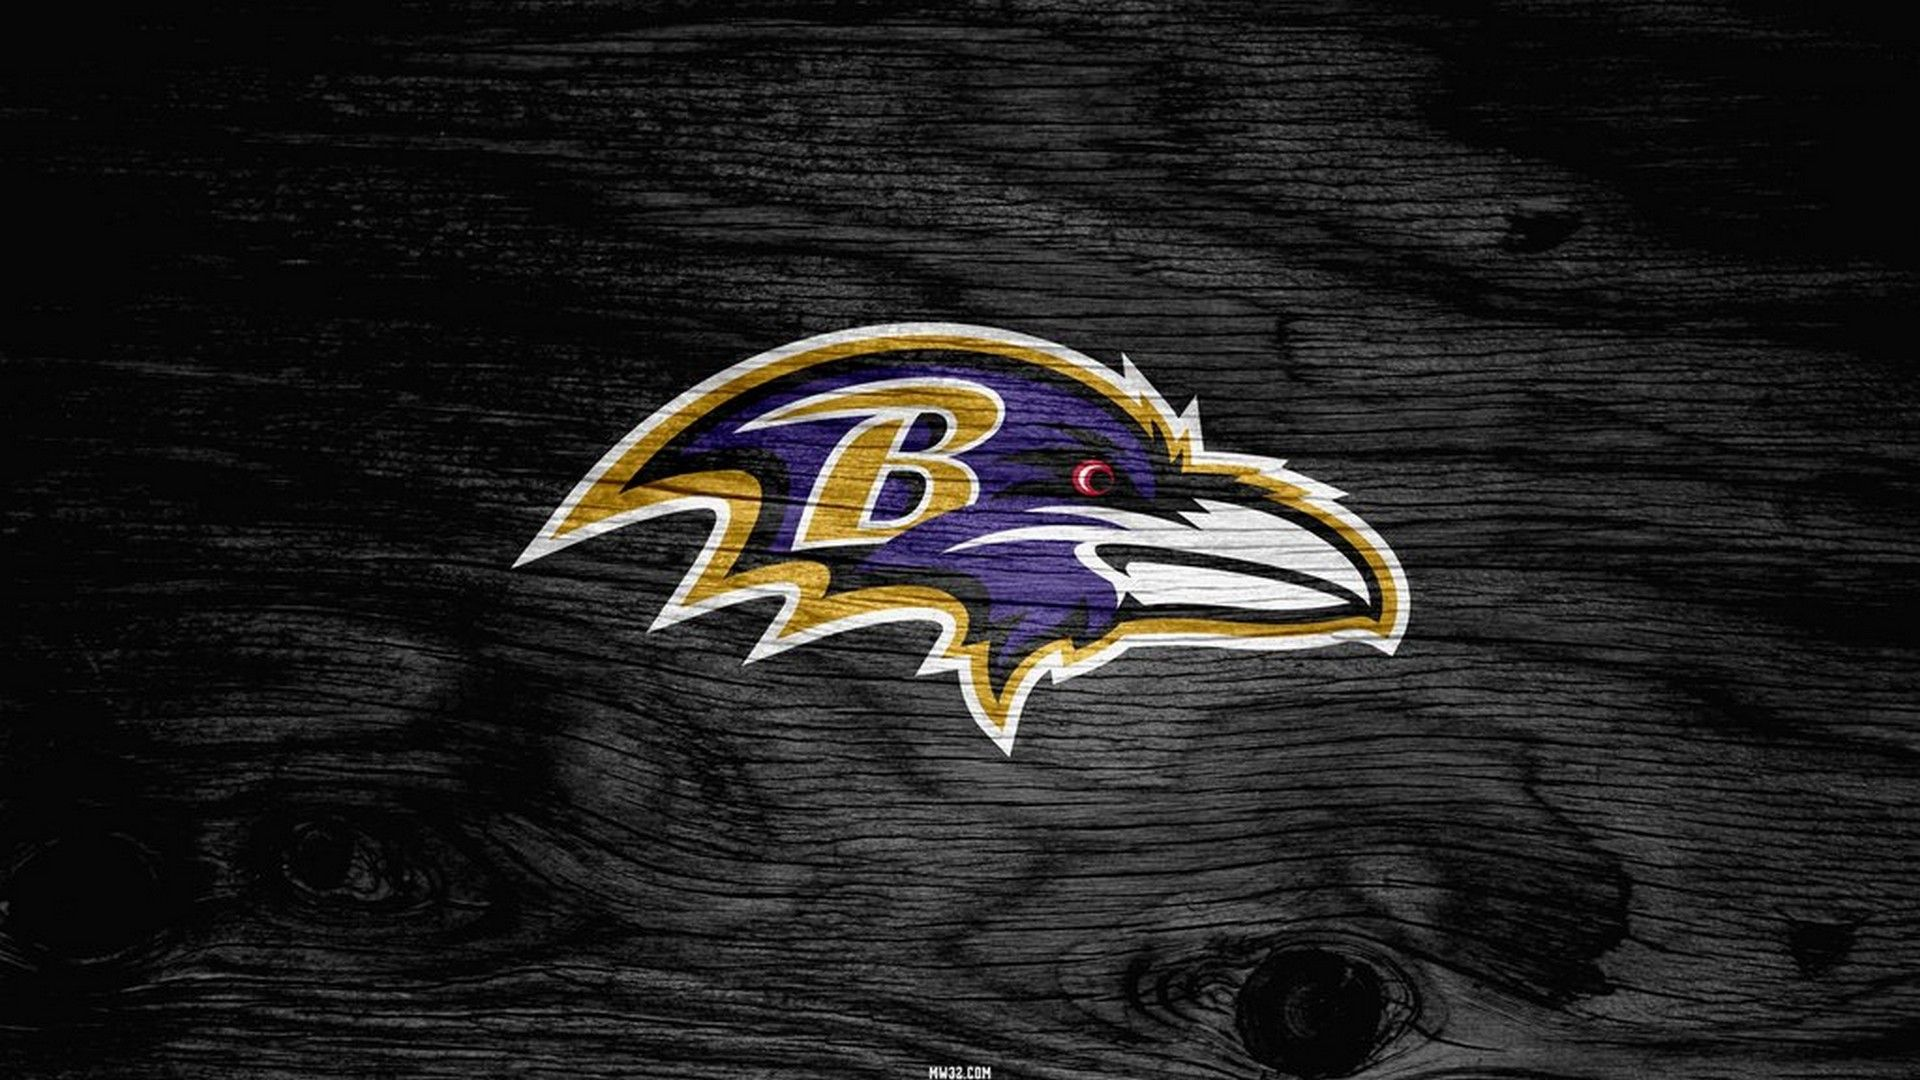 Wallpapers HD Baltimore Ravens Wallpapers Baltimore ravens 1920x1080